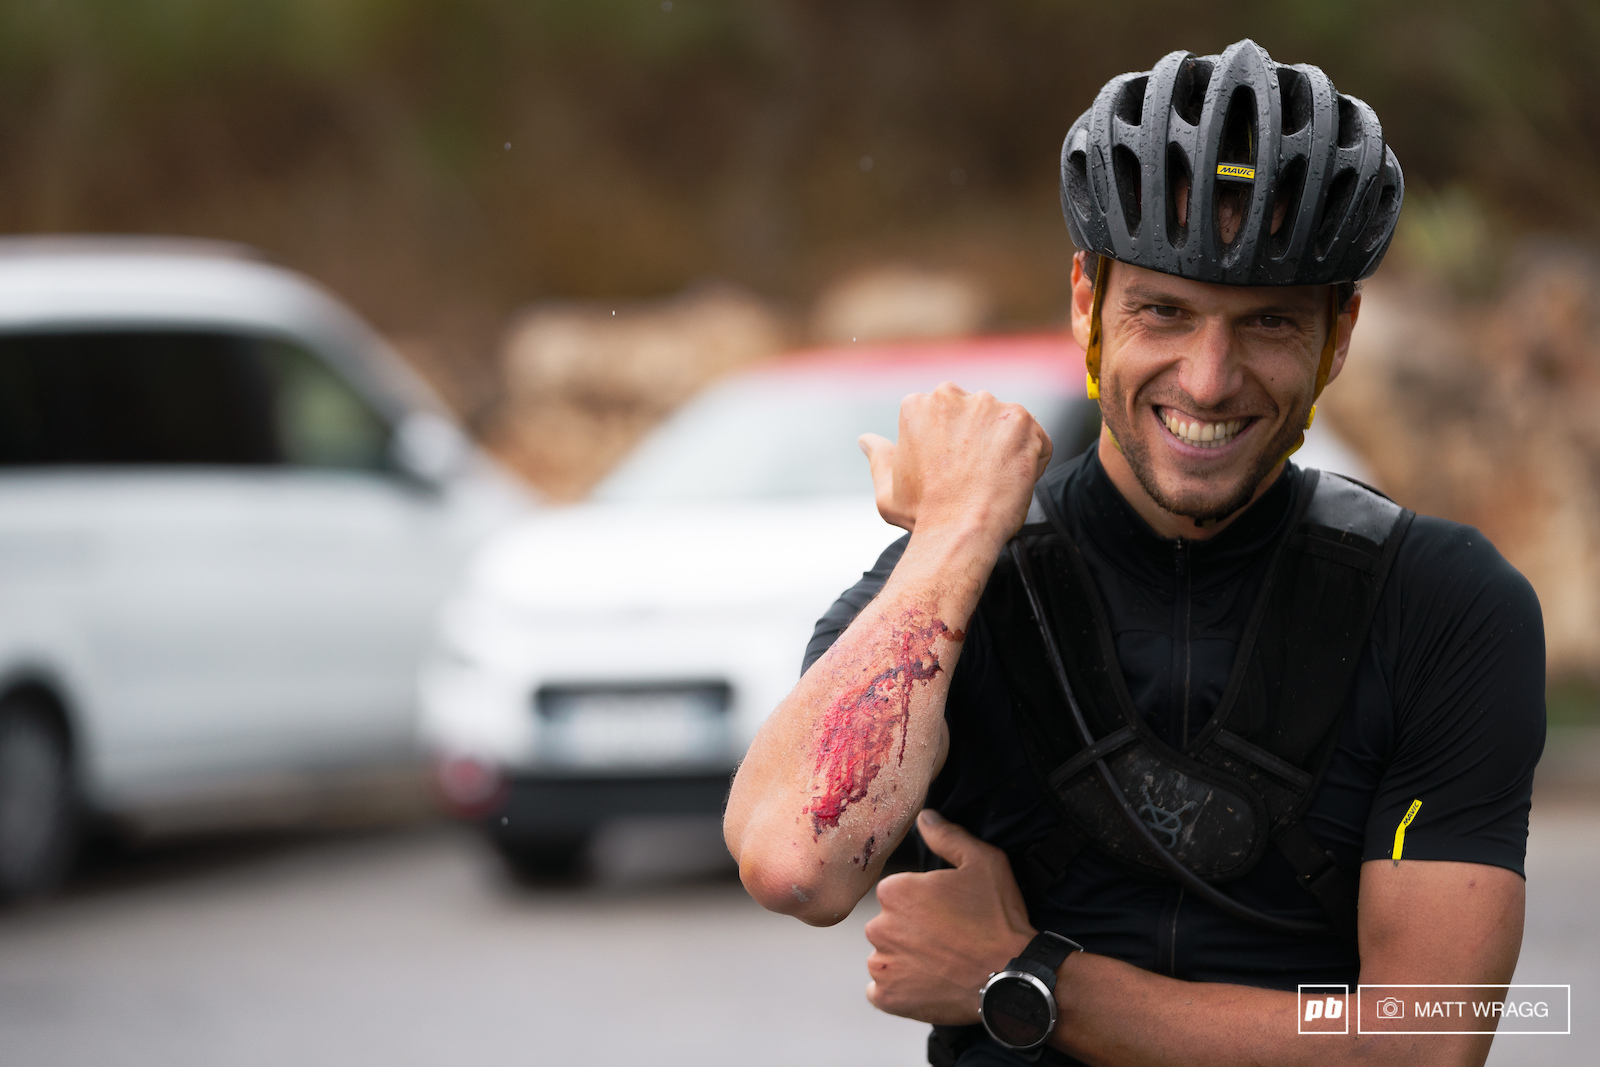 Smiles and scars ofr Alexis Chenevier. After Emeric passed him climbing he managed to hold him in sight for a while but ended up pushing too hard trying to make up time... His seventh victory in this race will have to wait a little longer.